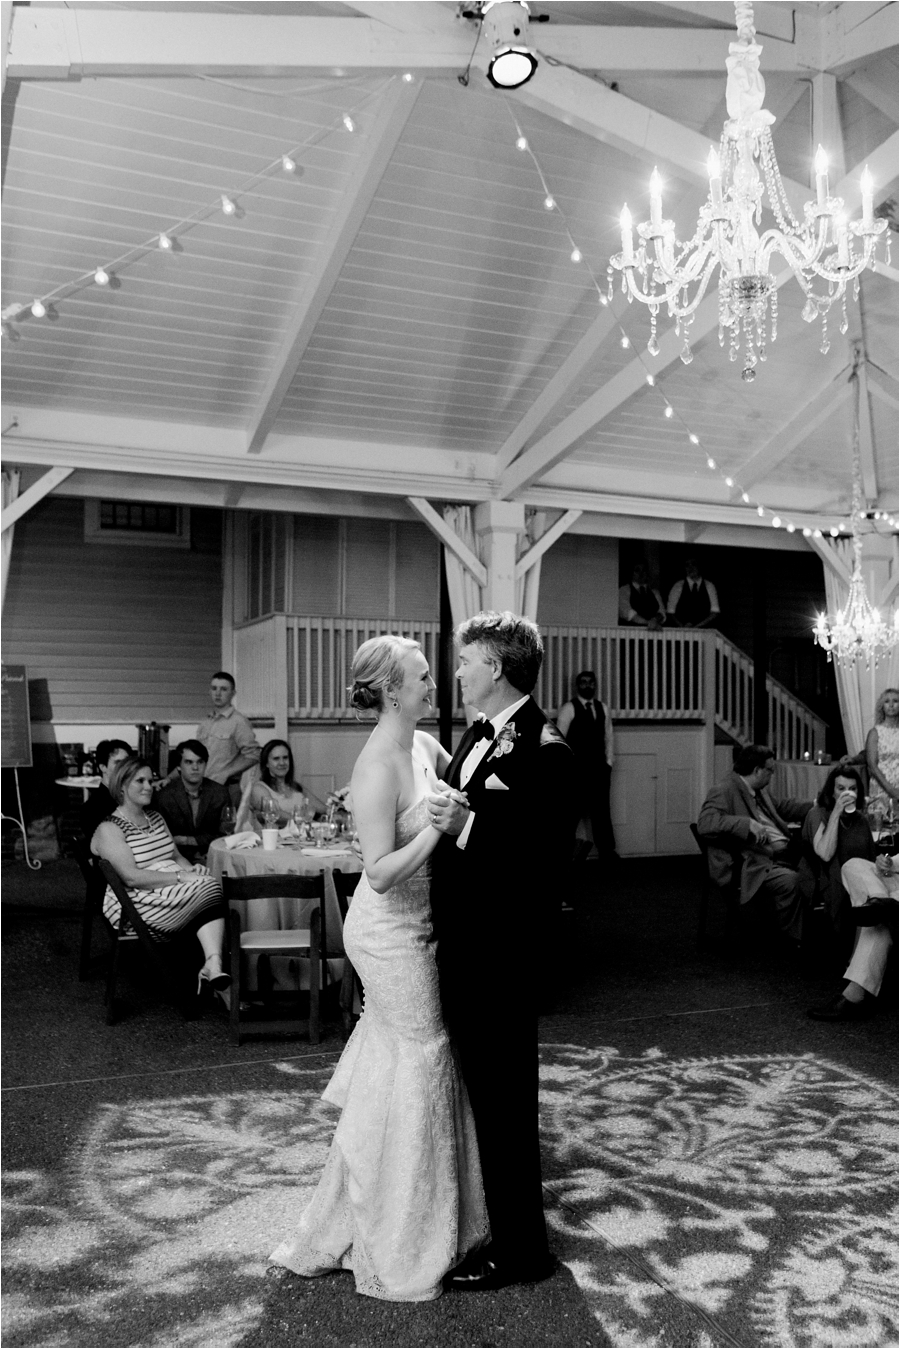 summer wedding cj's off the square by charlottesville wedding photographer, Amy Nicole Photography_0166